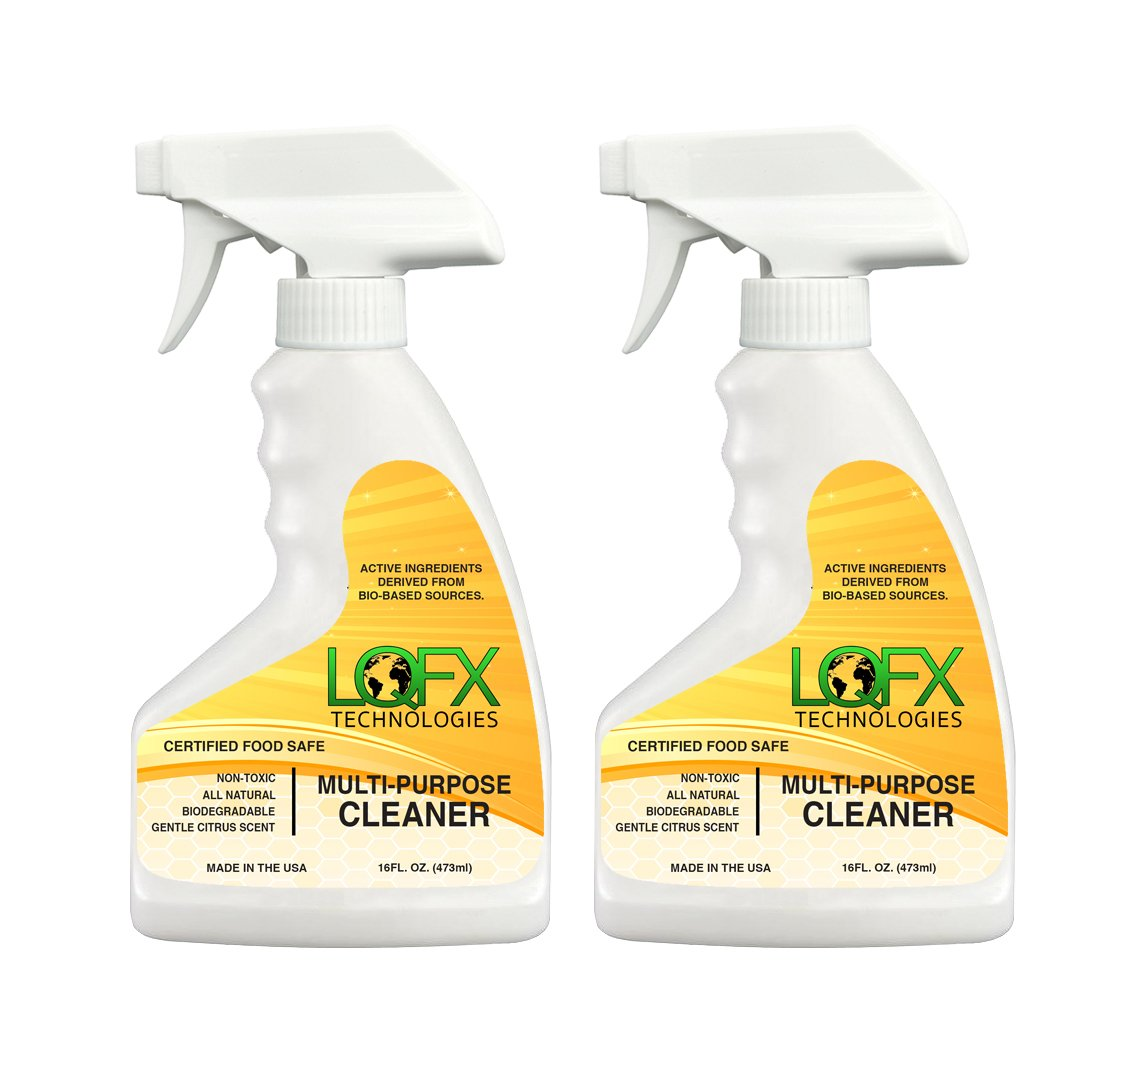 Liquifix LQFX Multi Purpose Cleaner Bio-Based Ingredients, Certified Non-Toxic, Food Safe, Safe Around Kids and Pets - 16oz 2-Pack